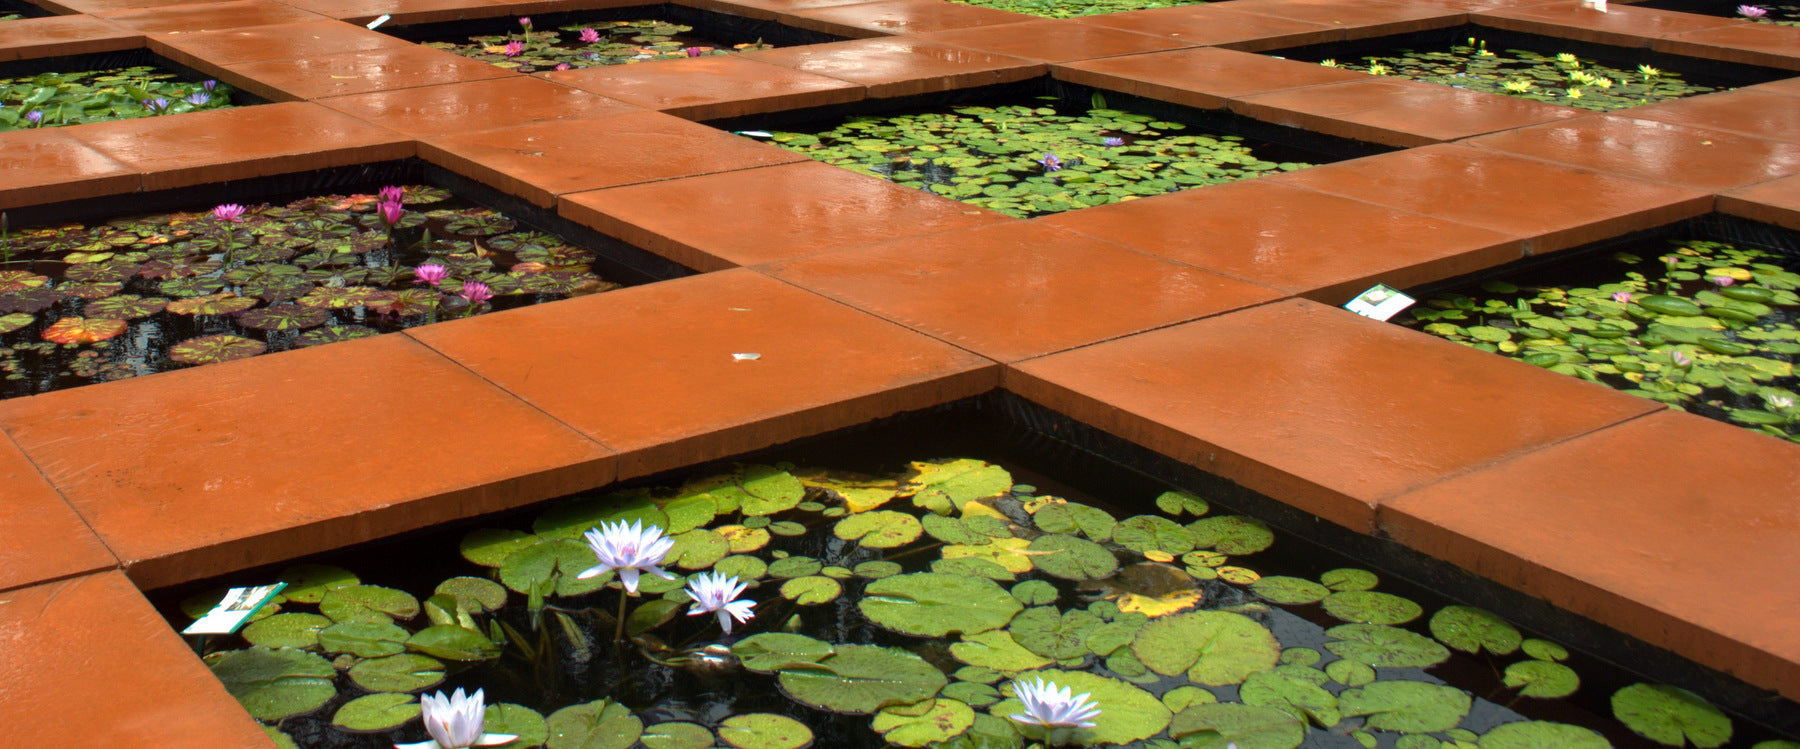 Water Lily Ponds on display at The Lily Farm